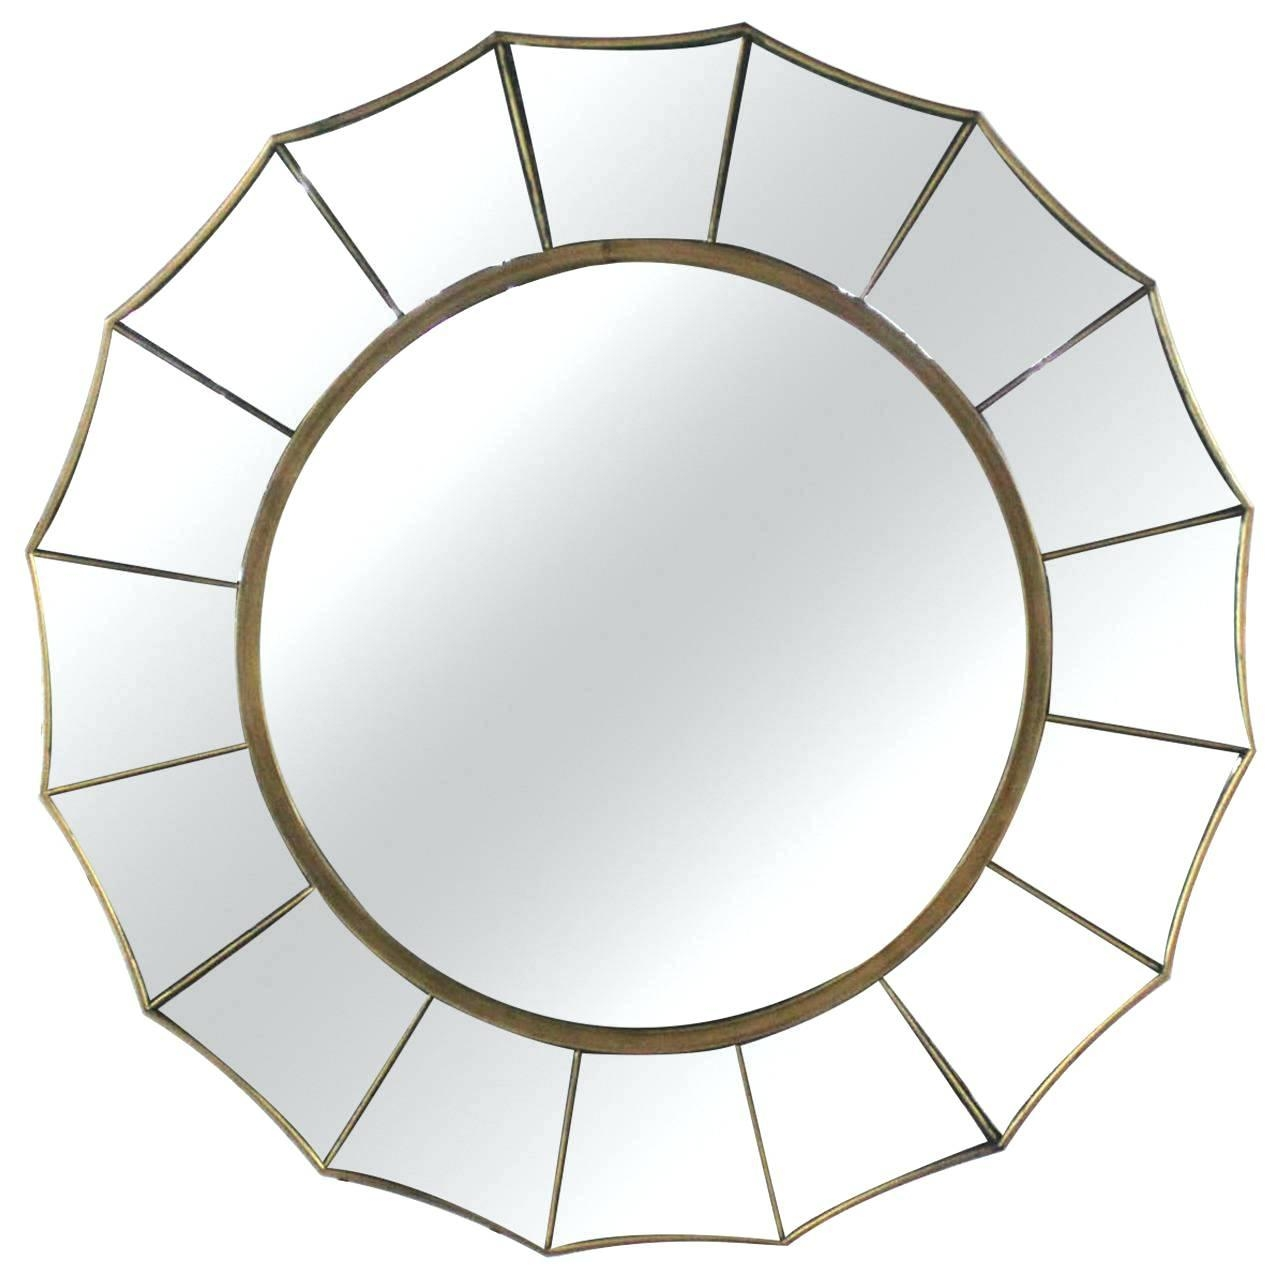 Wall Ideas : Unusual Wall Mirrors Wall Decorative Mirror With Regard To Modern Mirror Wall Art (Image 20 of 20)